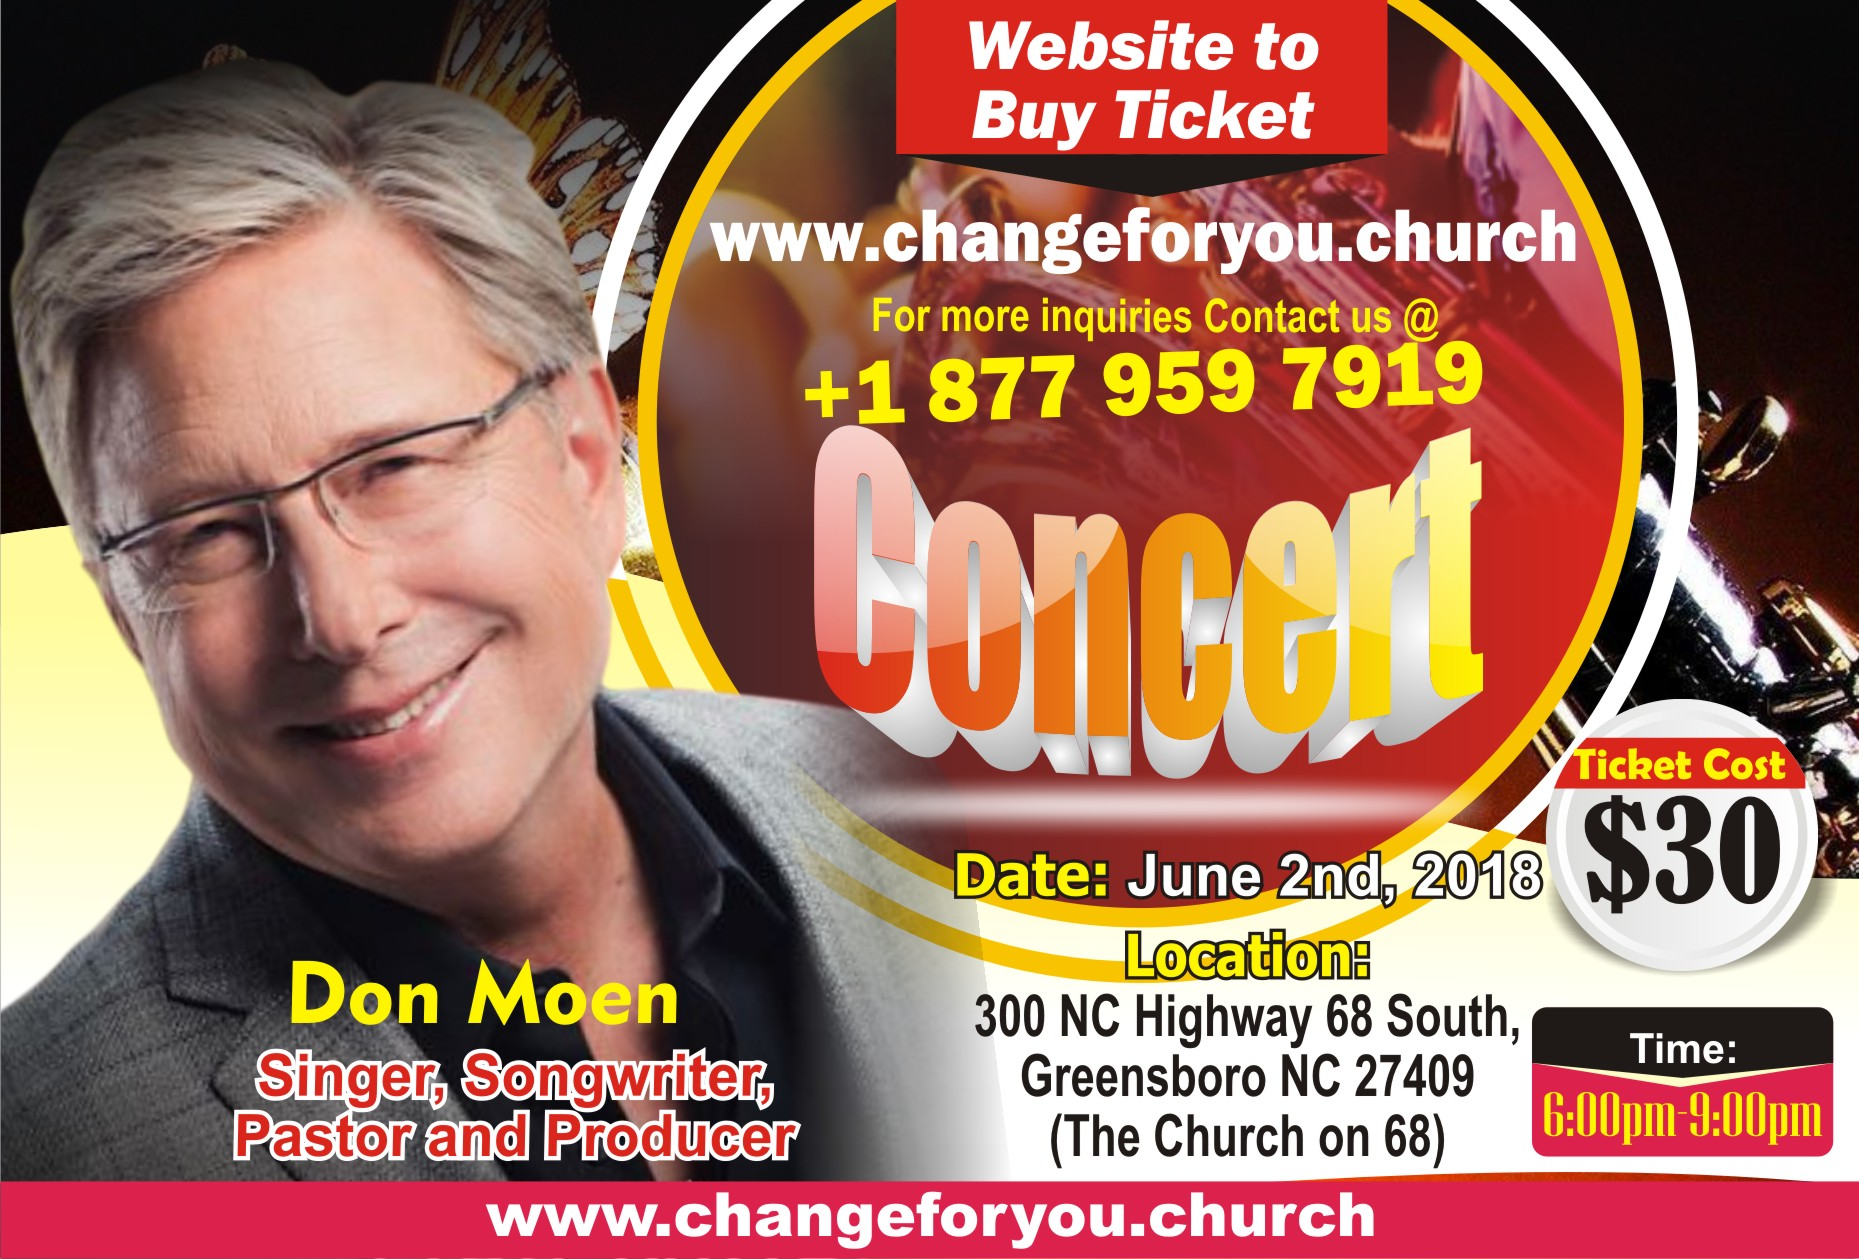 Next Level Concert:  Don Moen Greensboro